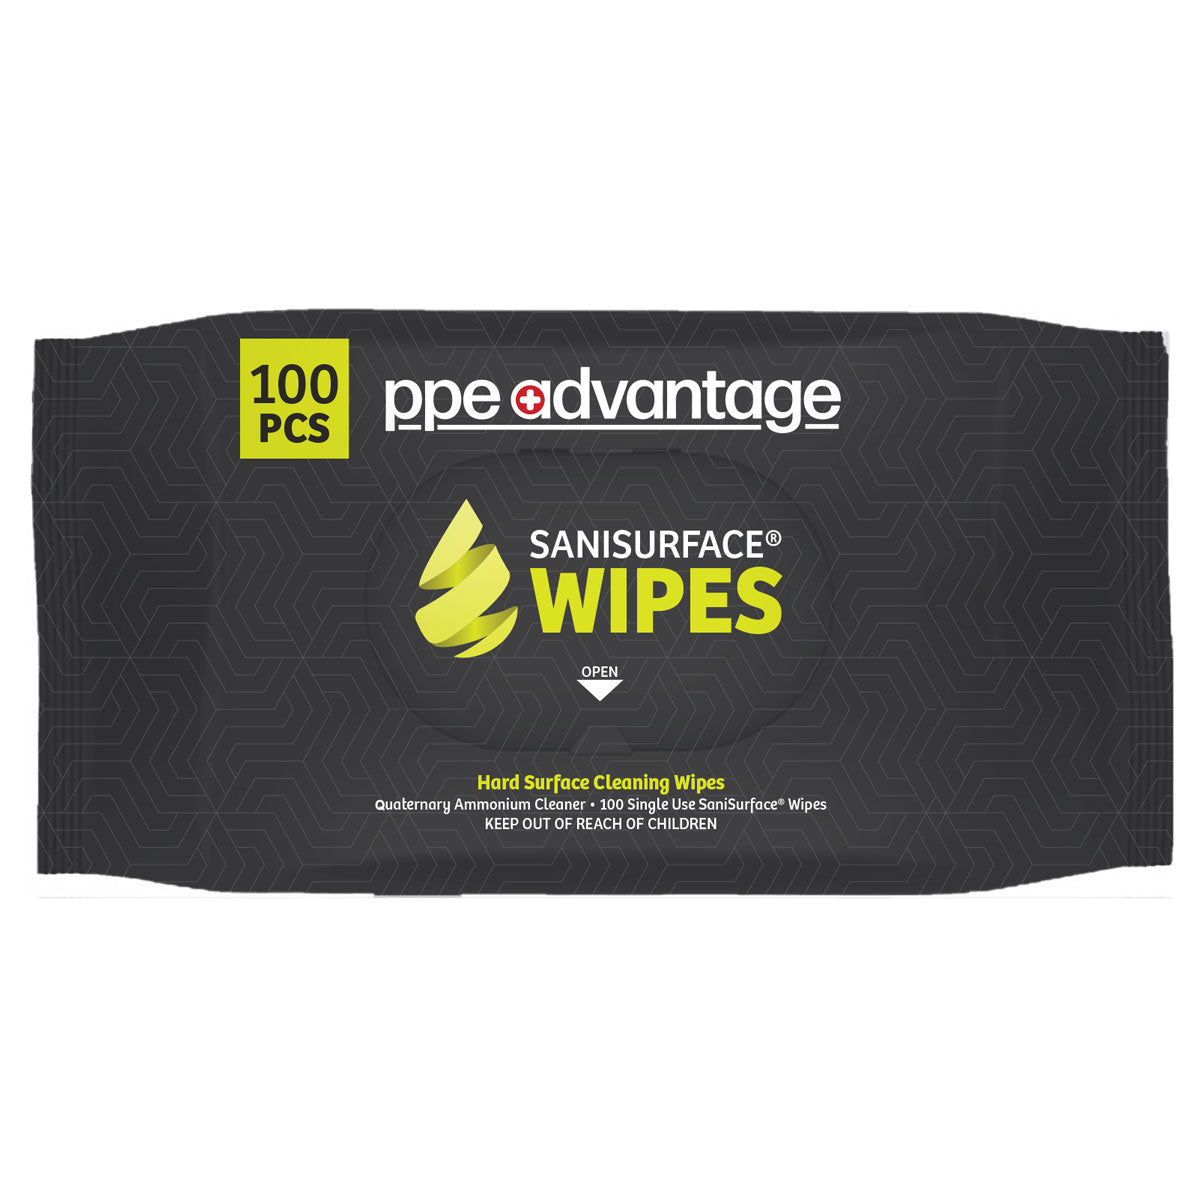 3033 PPE Advantage Sanisurface¨ Wipes (100) Bag- PPEA Branded Label EPA REGISTERED FACTORY | PPE Advantate powered by dS Product Hunters